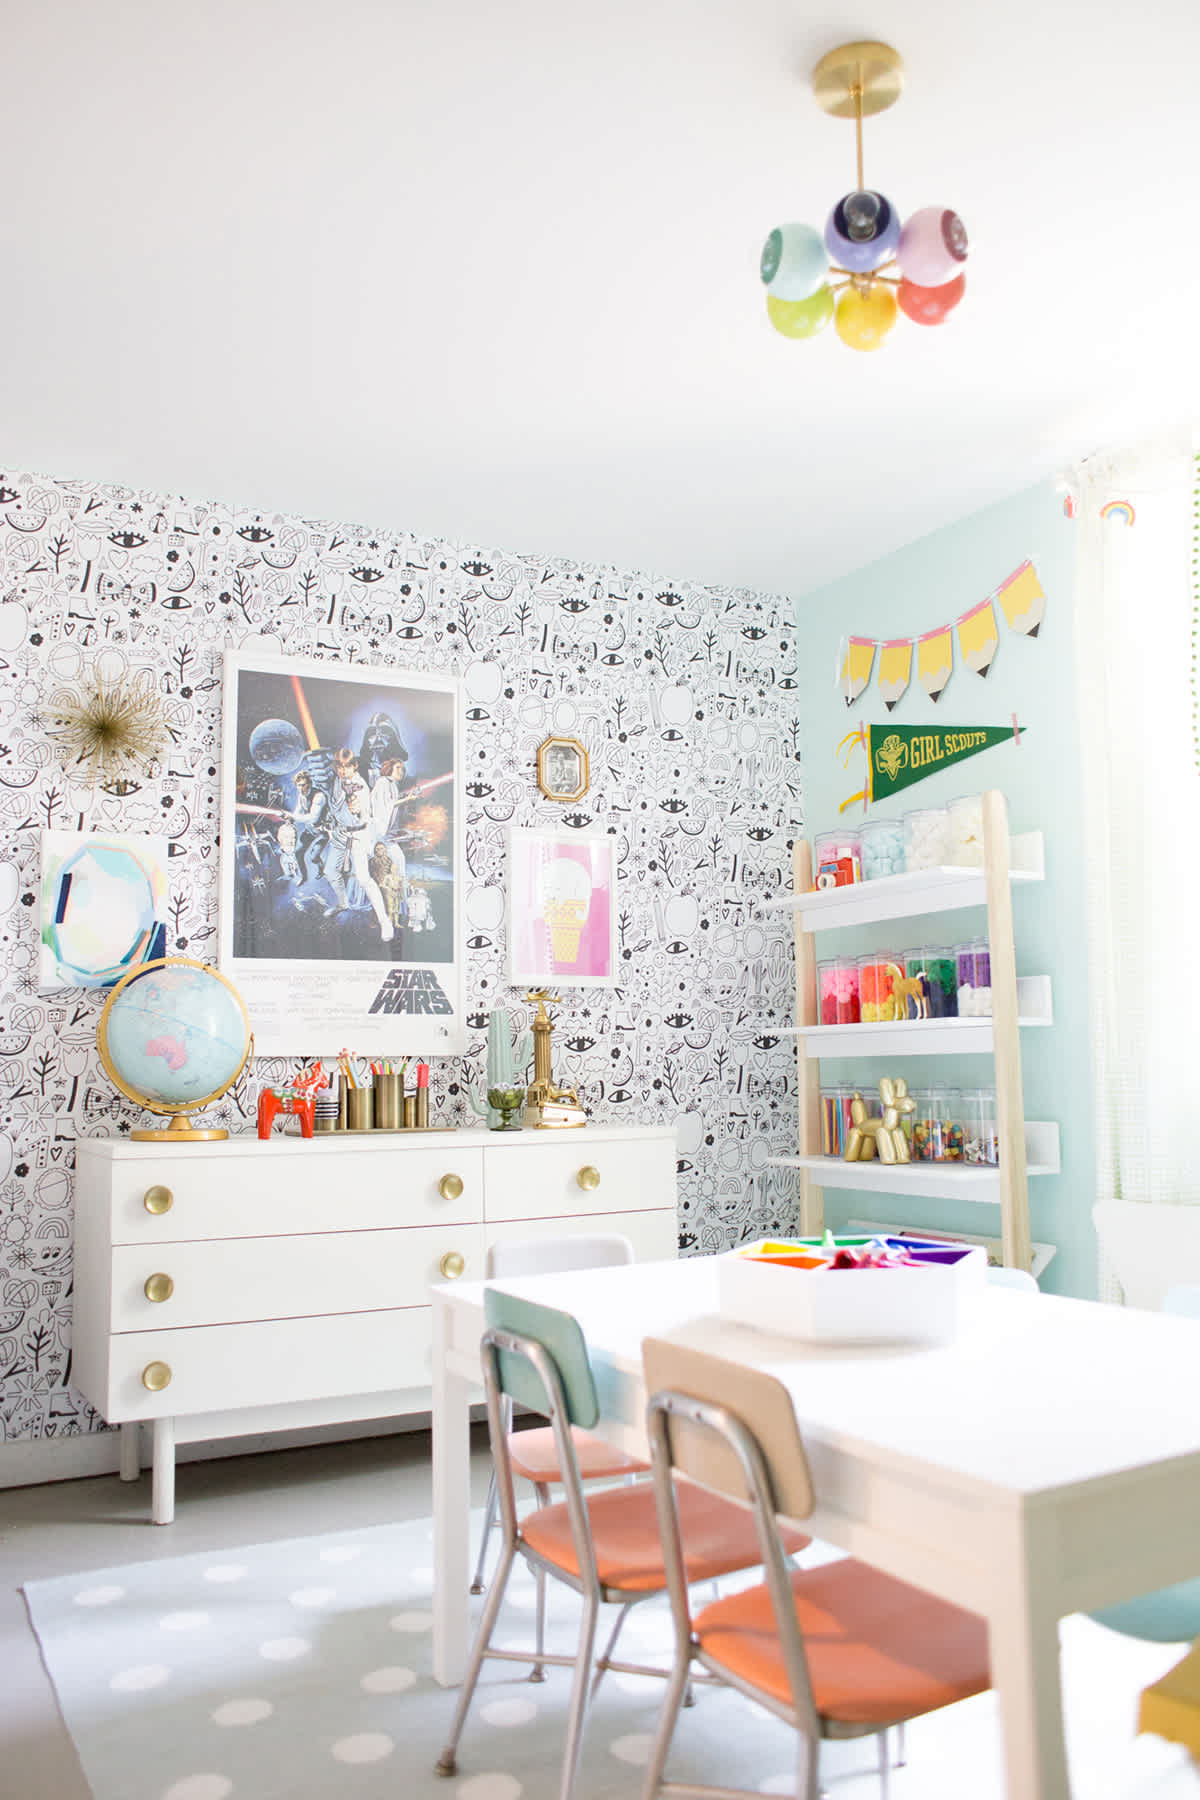 Room Design For Kid: Craft Room Ideas For Kids